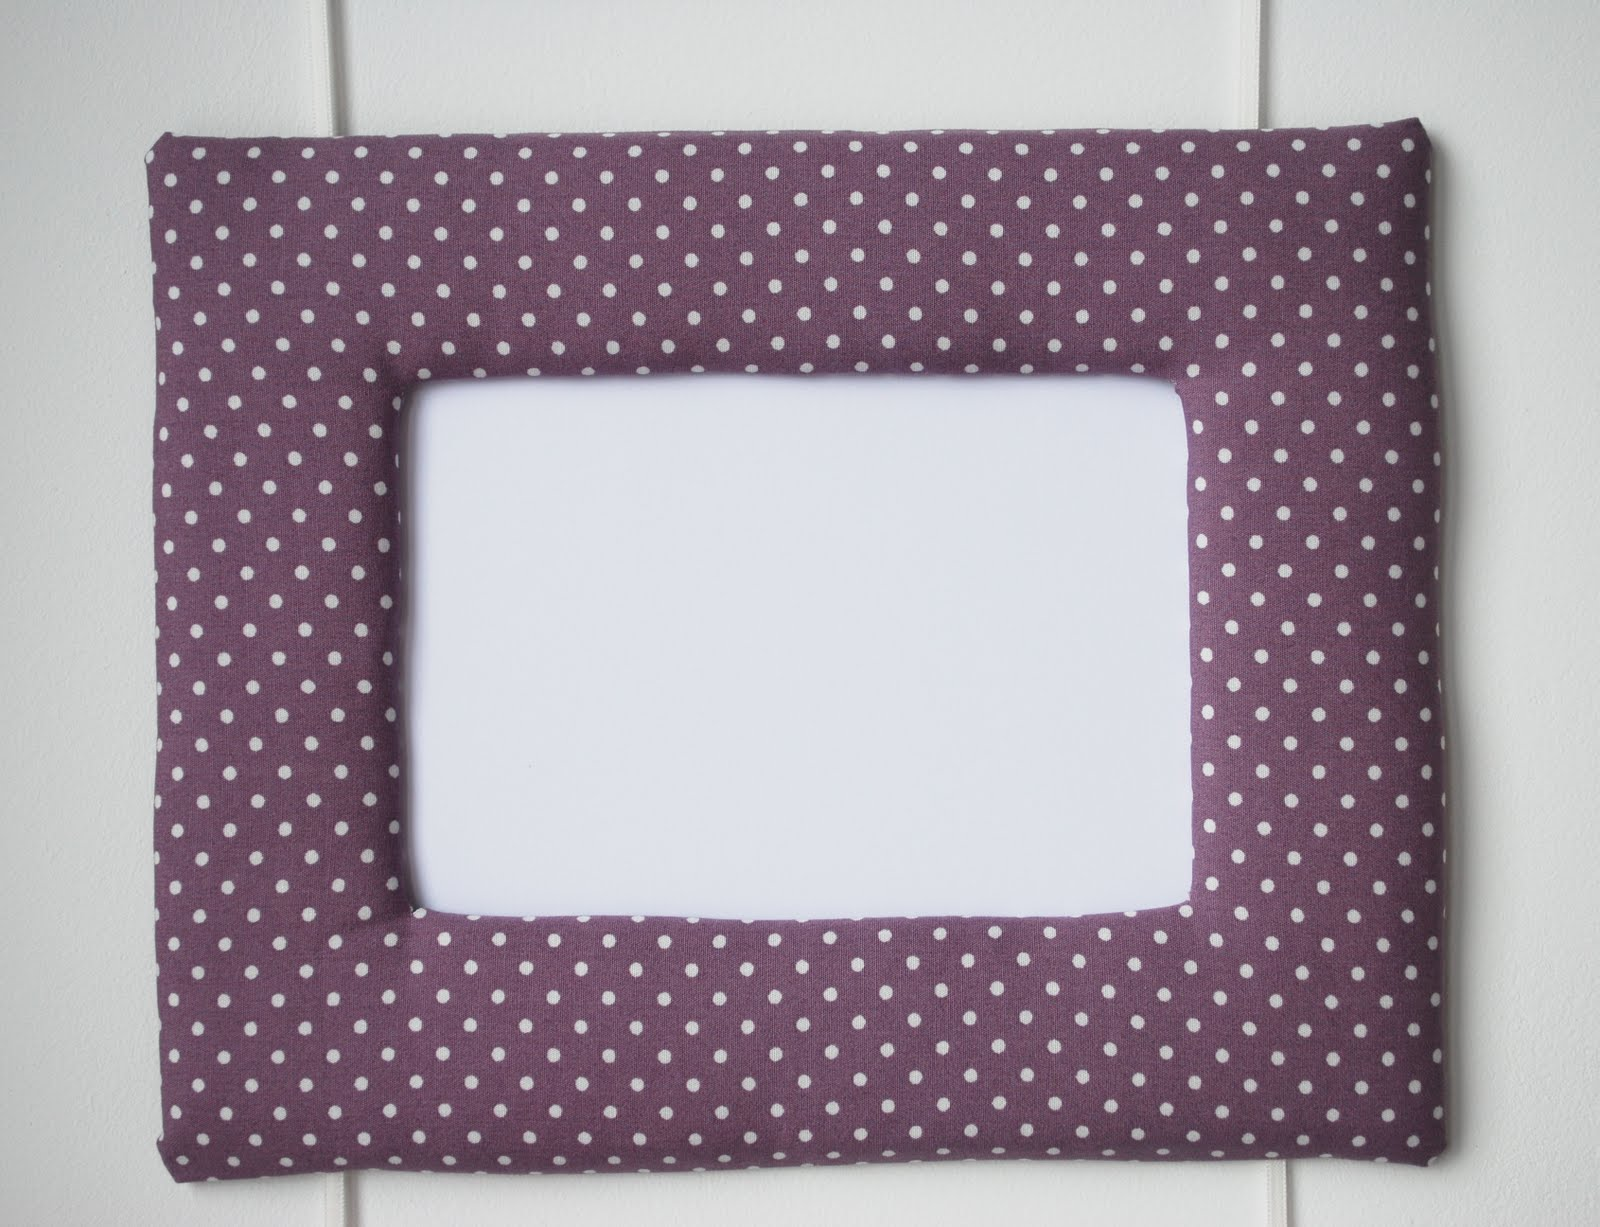 Rosie Simons Graphic and Surface Design: New fabric photo frames